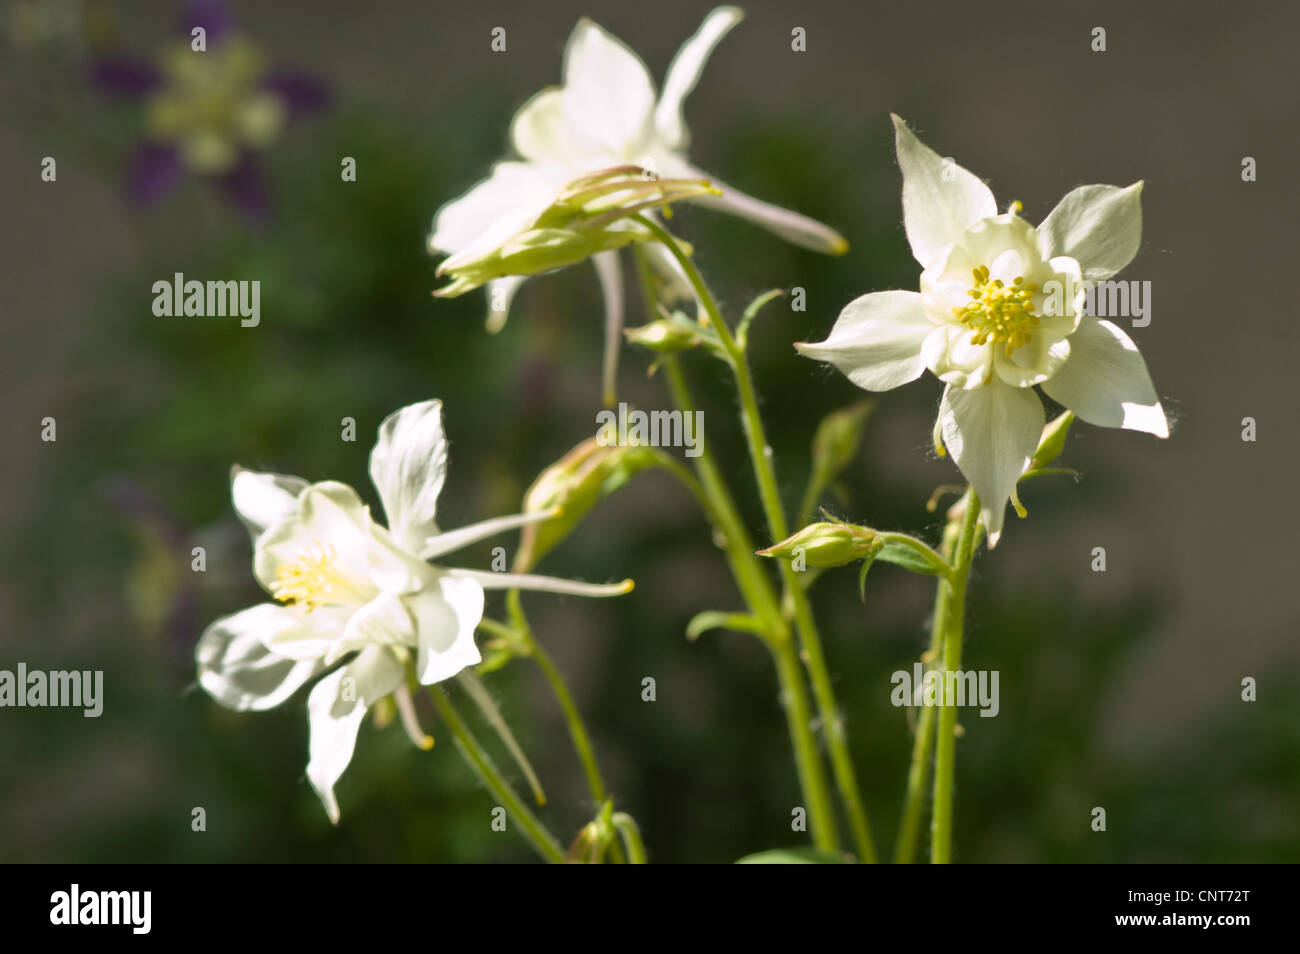 White Yellow Flowers Columbine Aquilegia Ranunculaceae Stock Photo